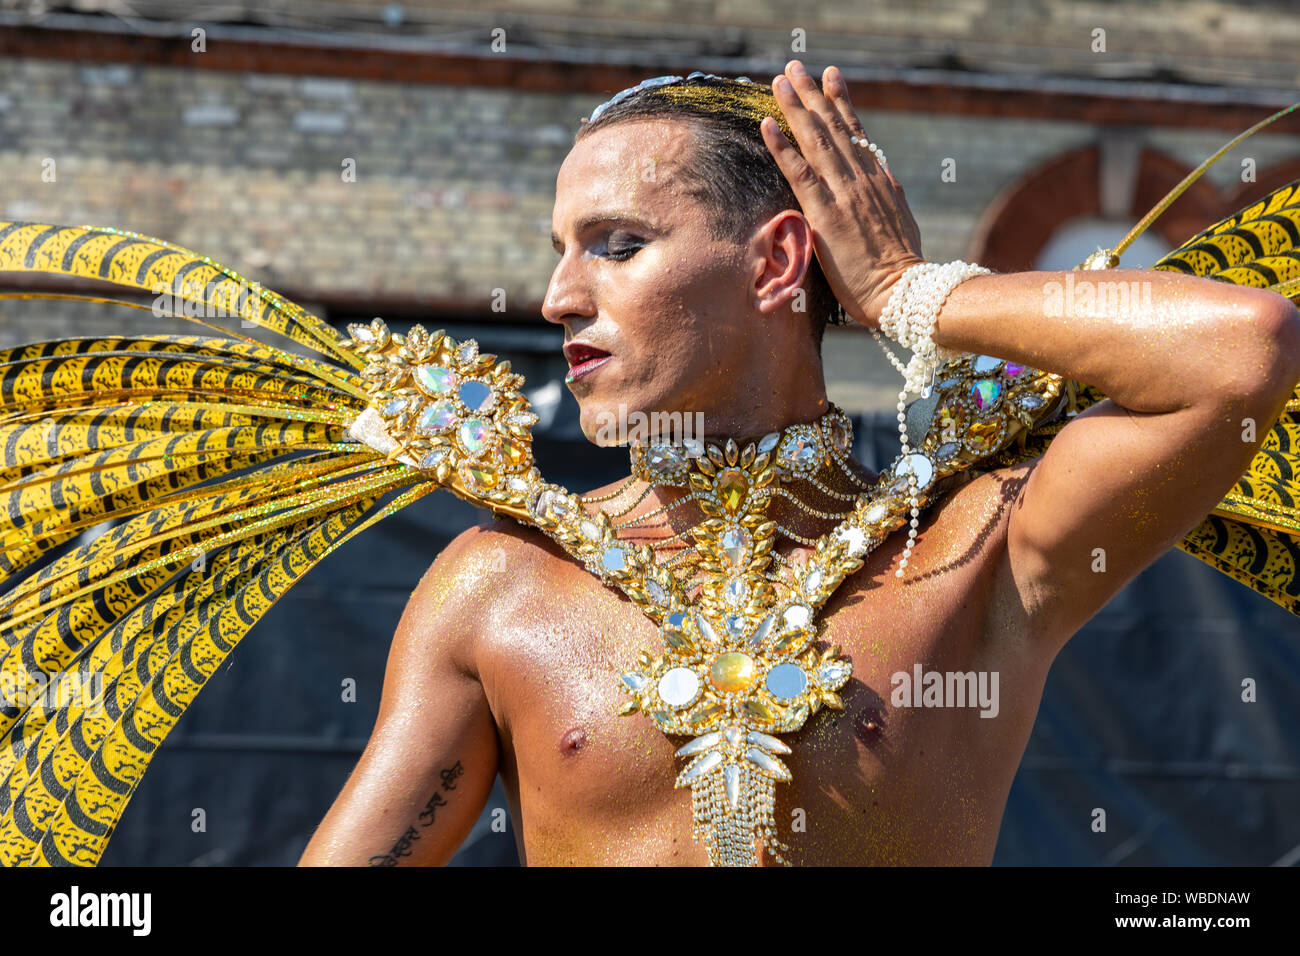 A parade pariticpant performing at Notting Hill carnival on August 26th 2019 Stock Photo